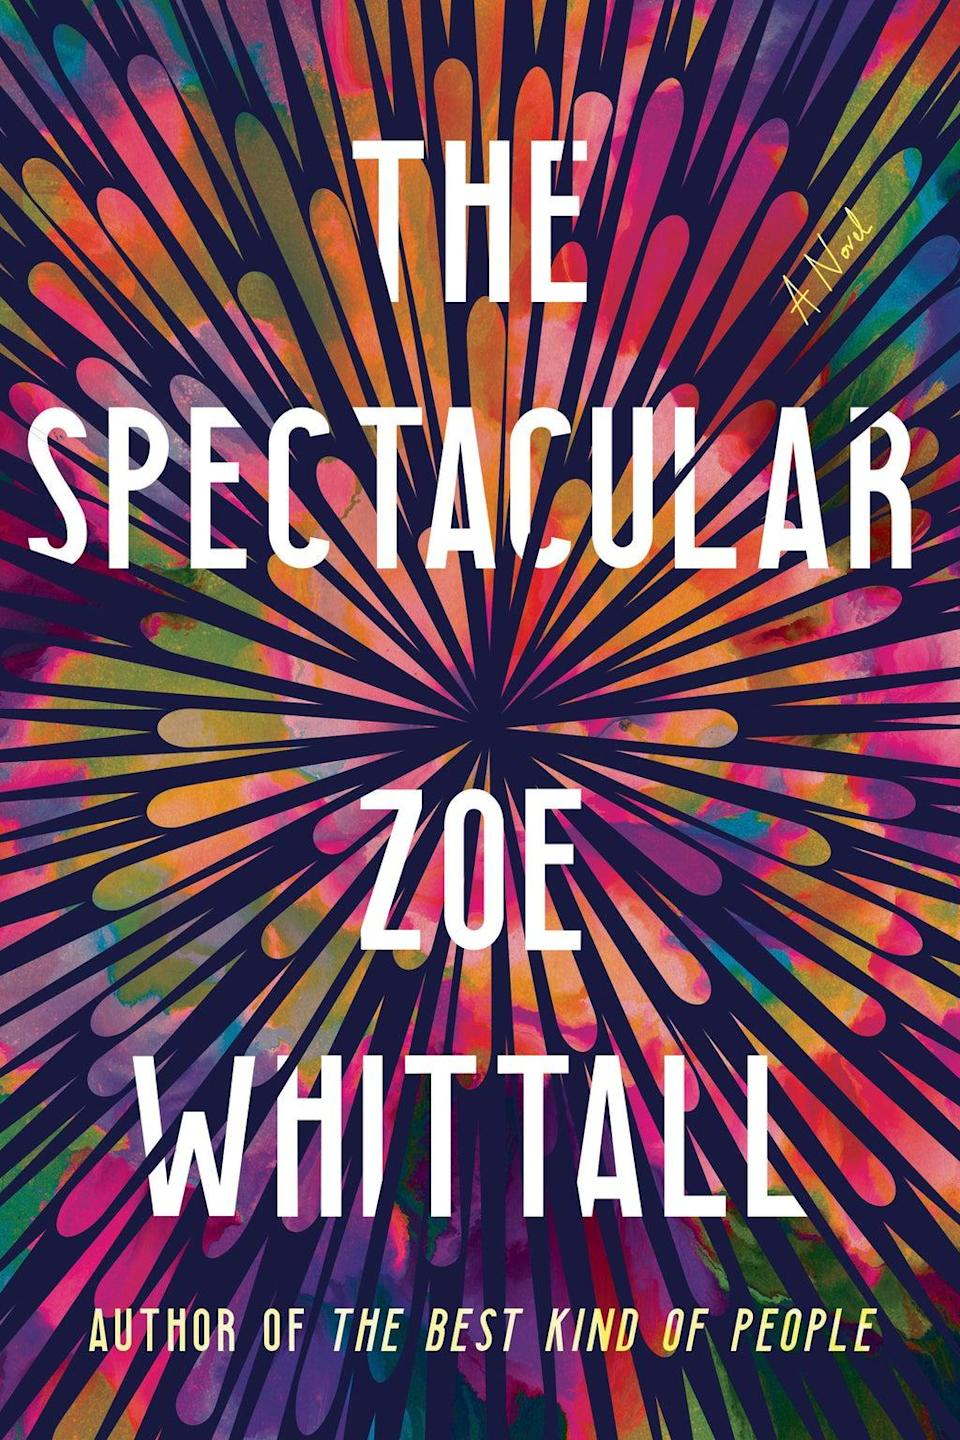 Book Review - The Spectacular (ASSOCIATED PRESS)